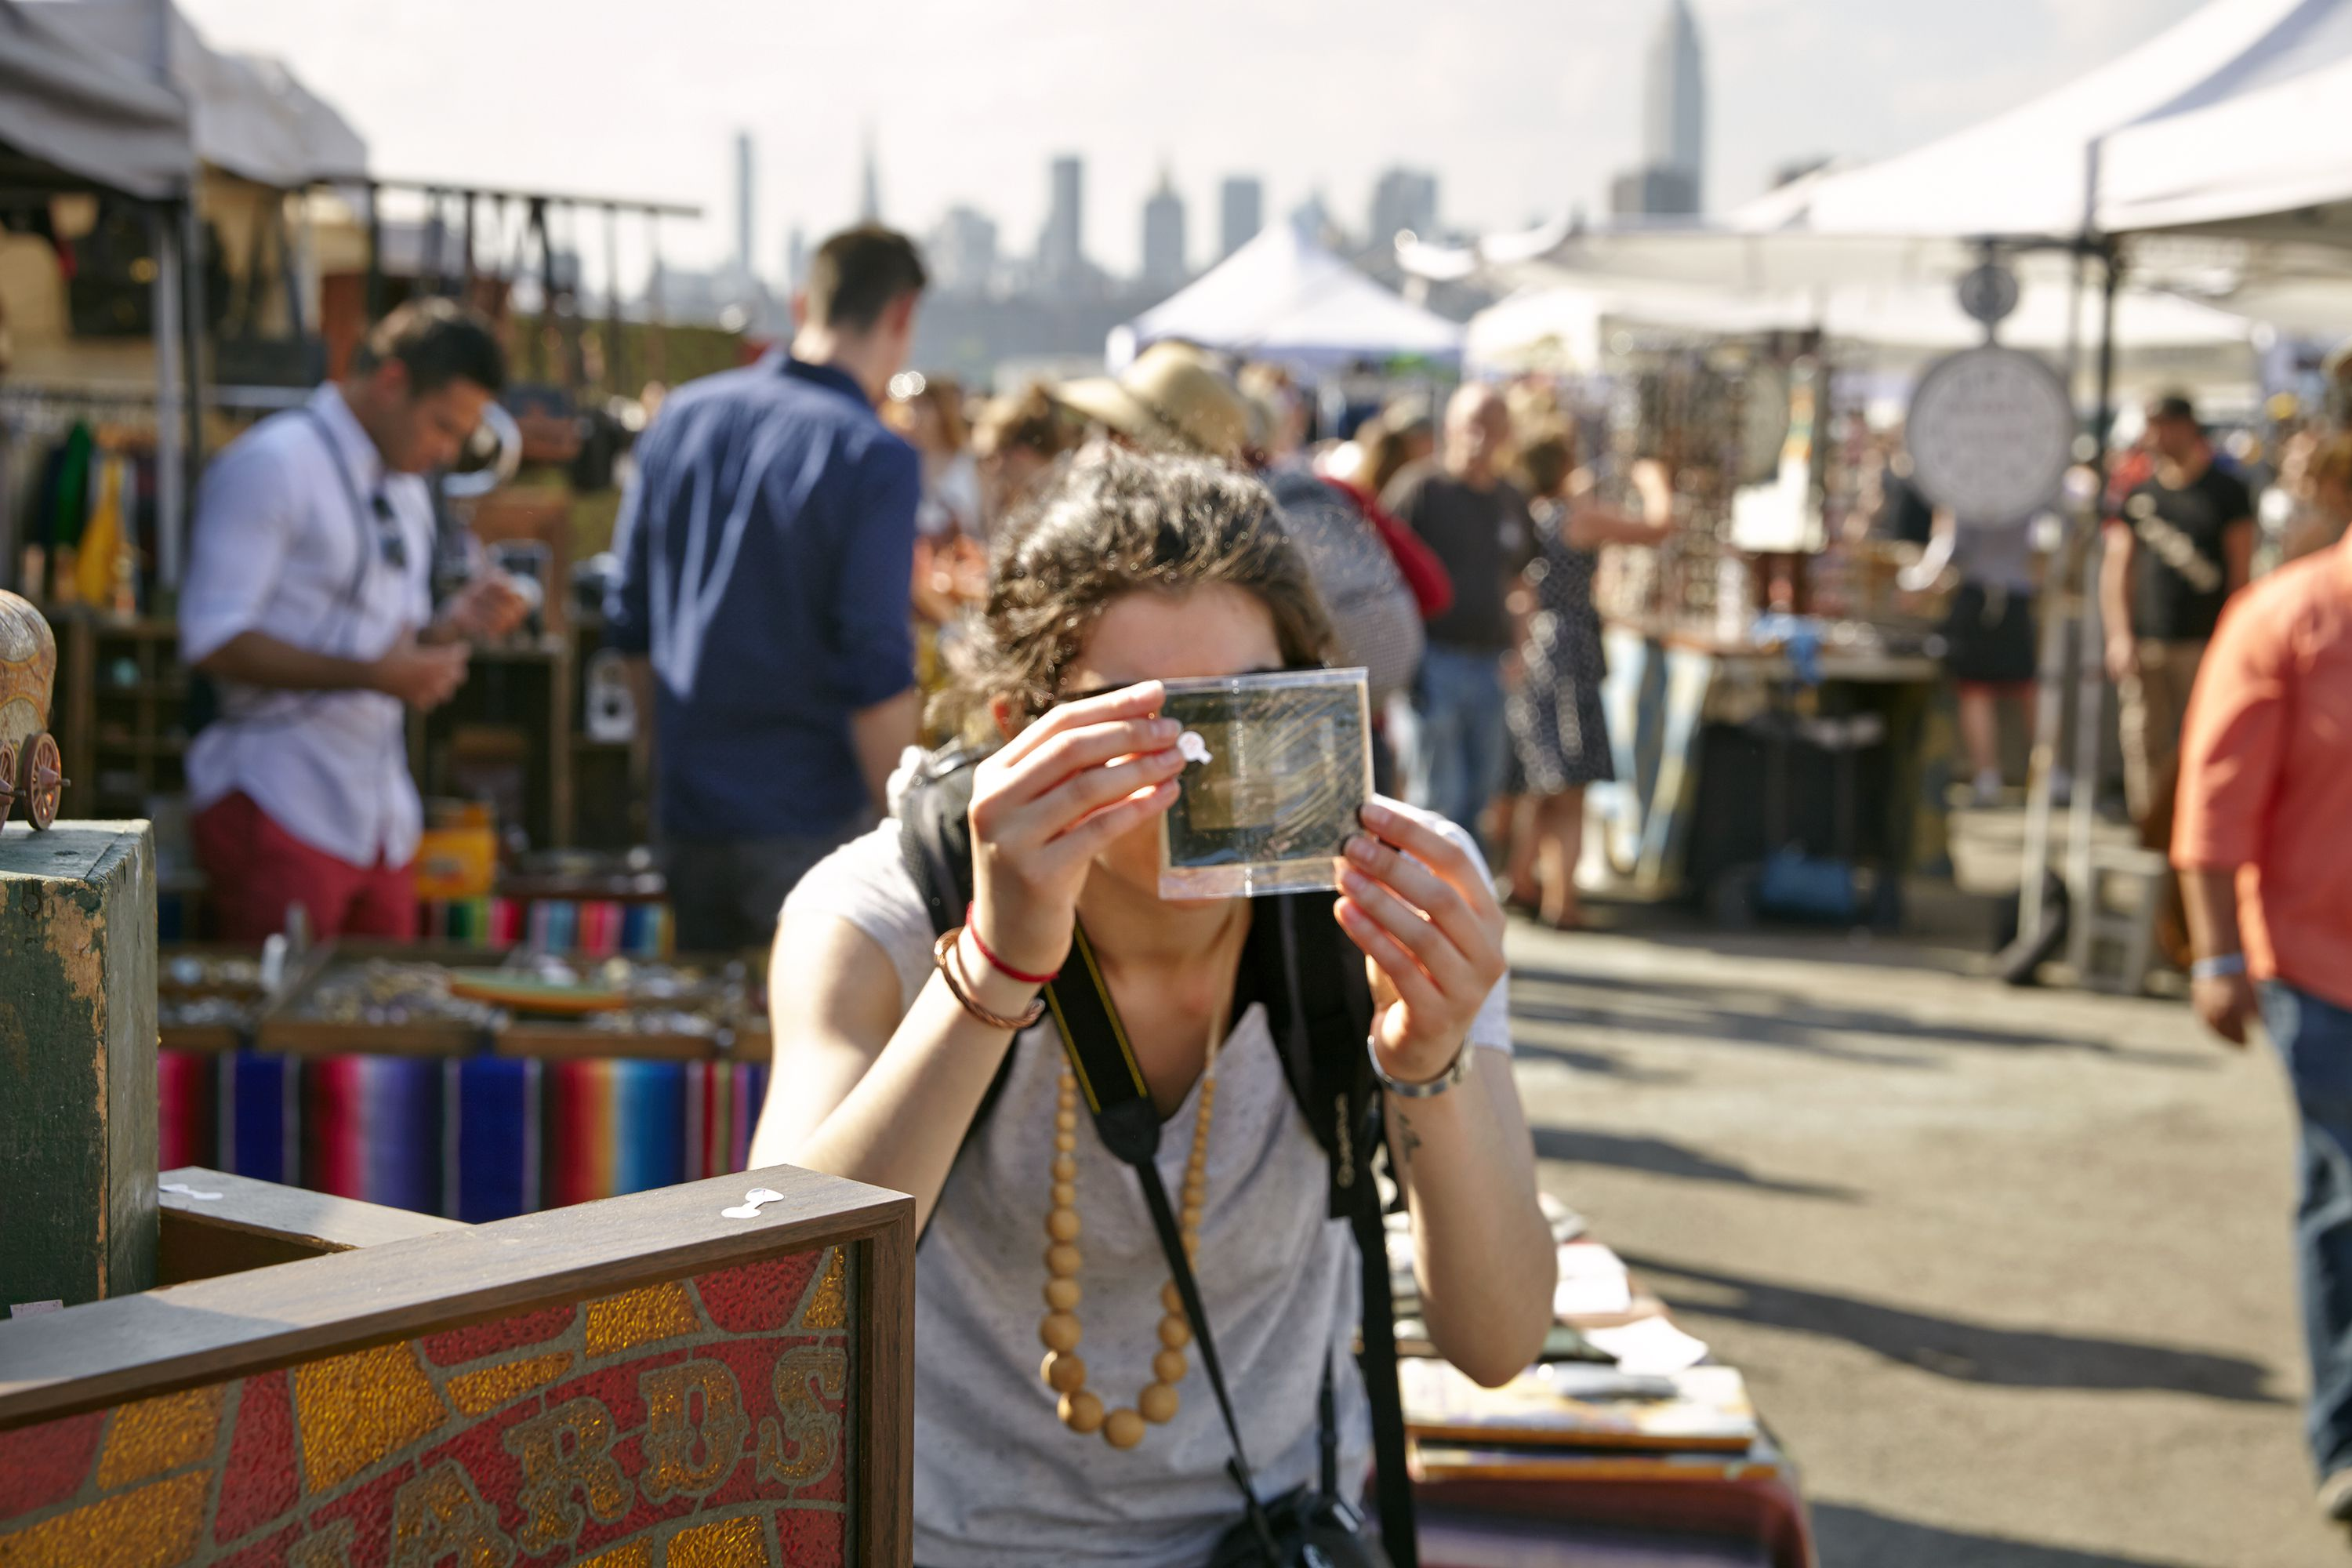 The Top 10 Flea Markets In The United States